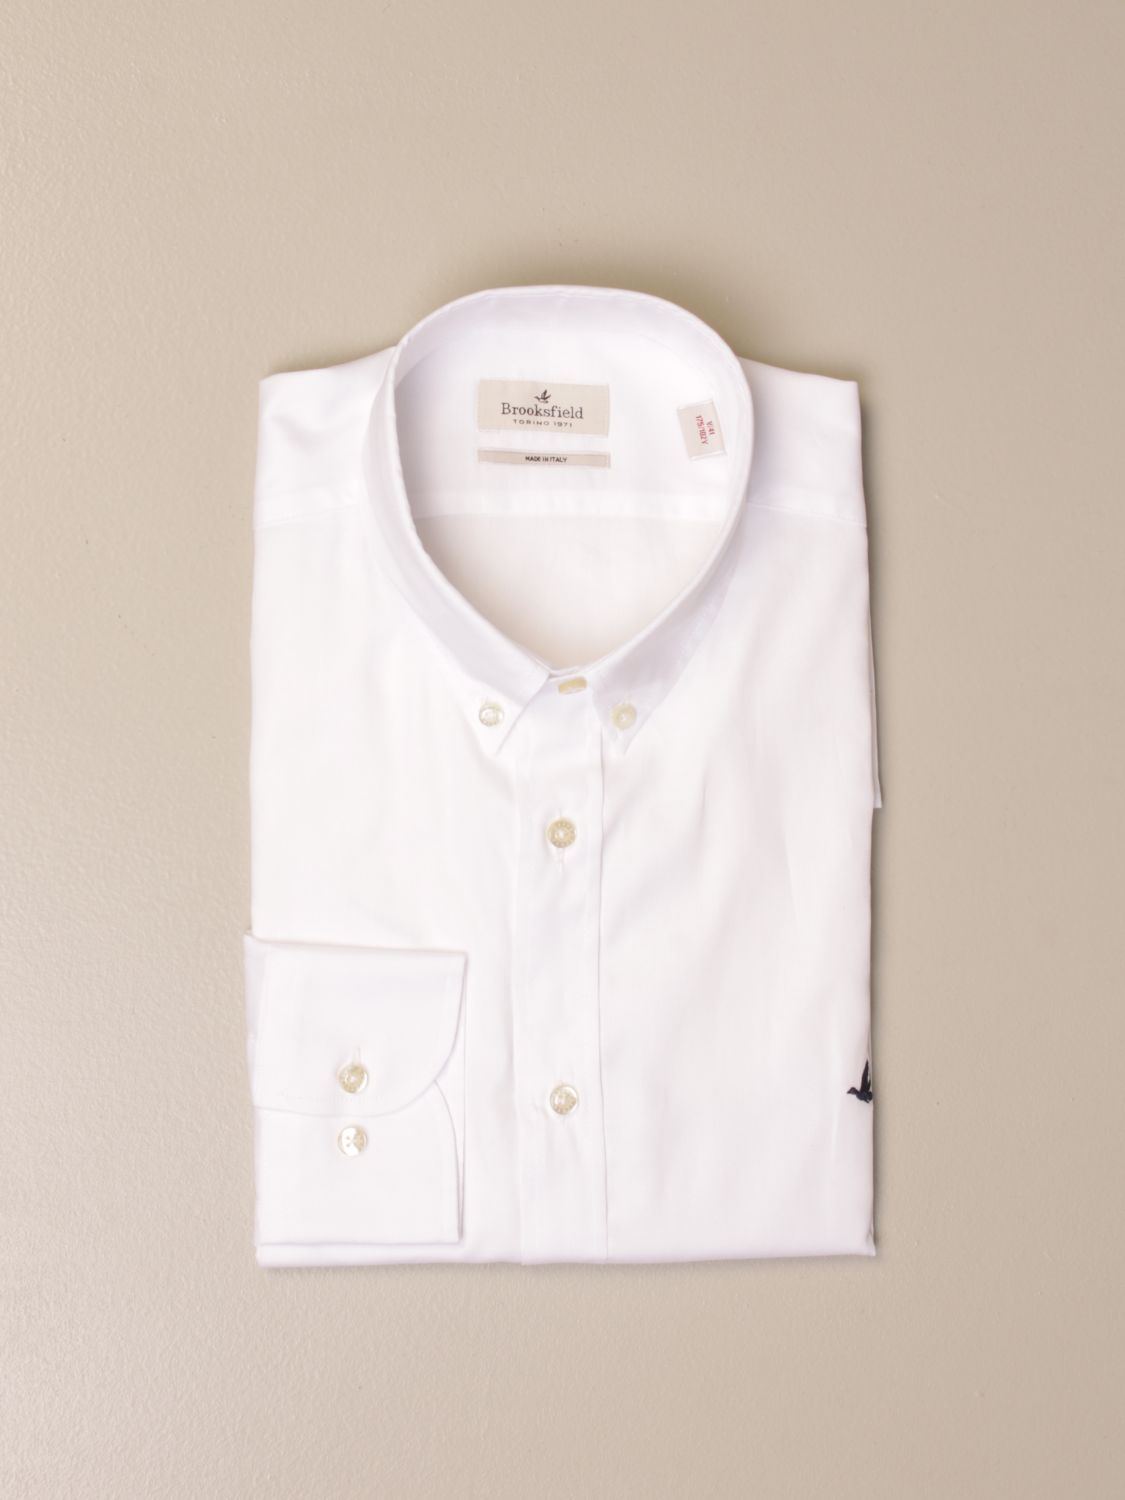 Shirt Brooksfield: Brooksfield shirt with button down collar white 1